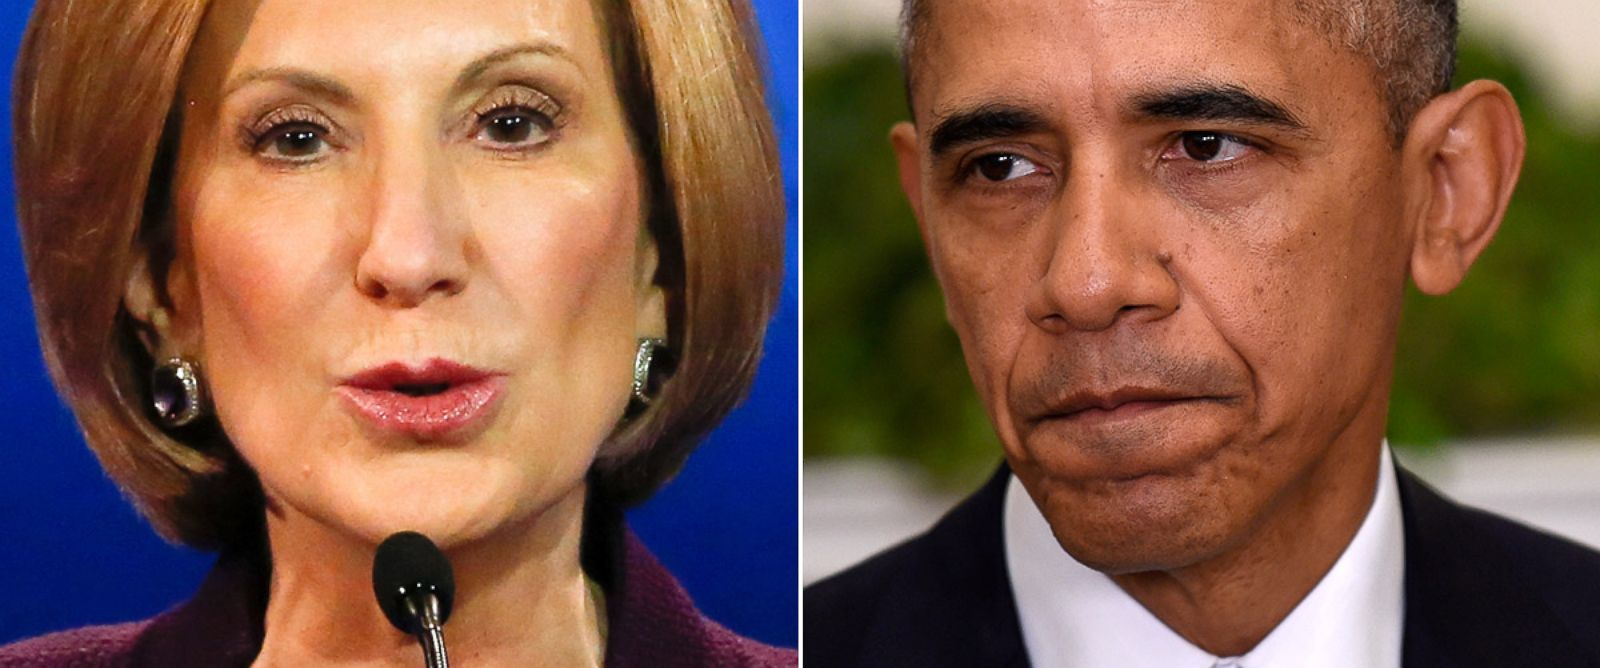 PHOTO: Carly Fiorina, left, and President Barack Obama.